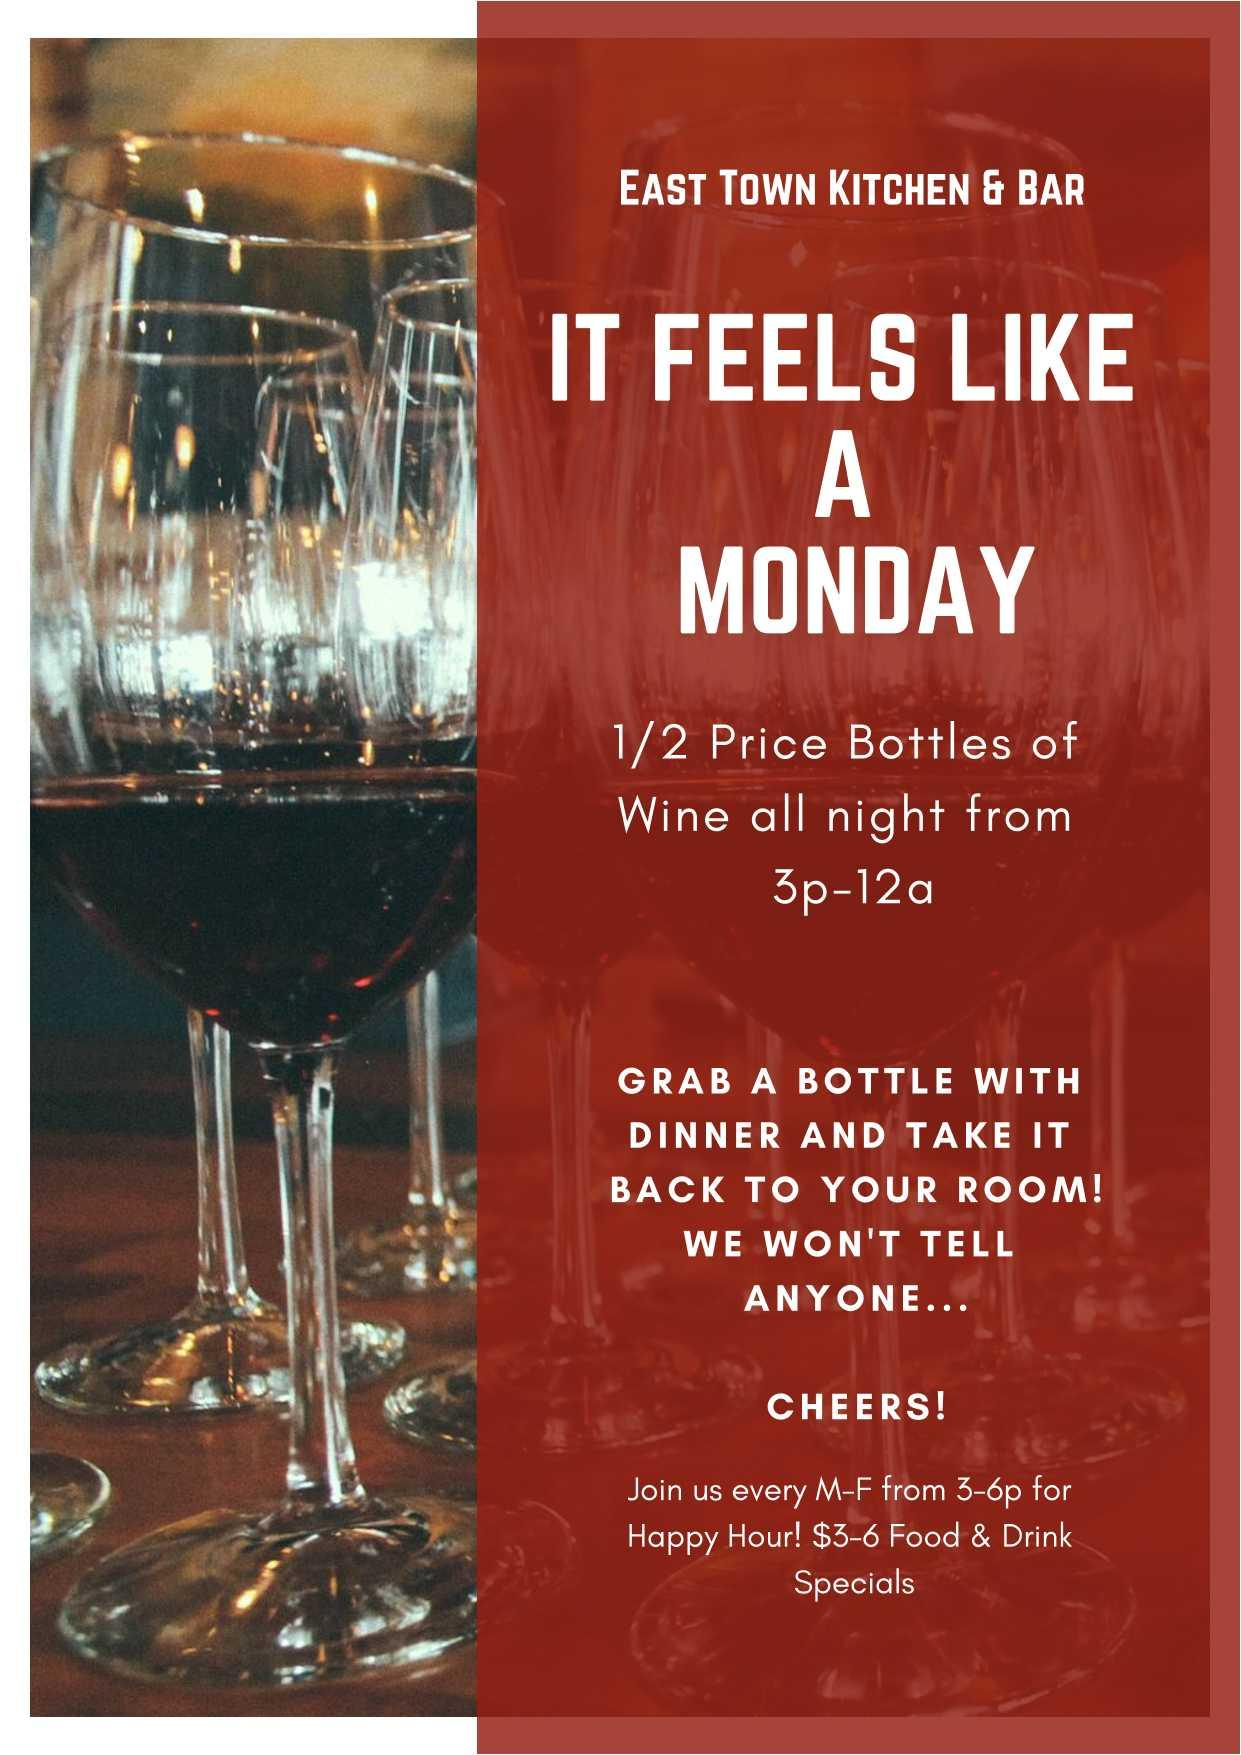 Weekly Wine Specials on Monday at East Town Kitchen & Bar